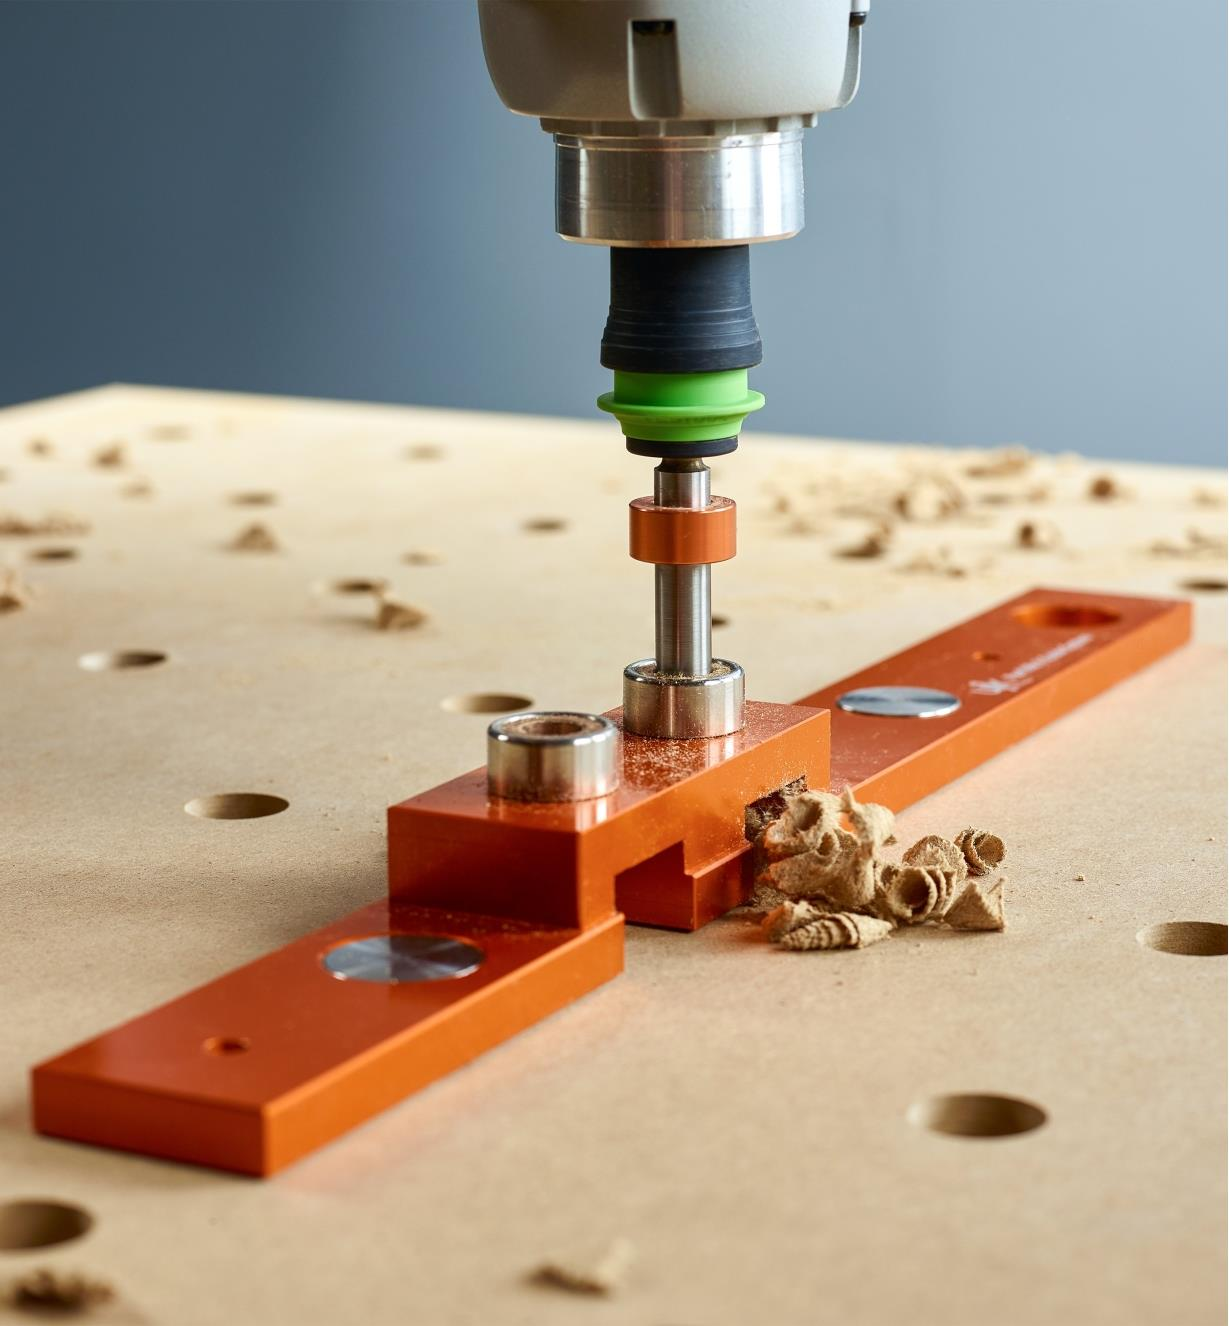 Drilling into a work surface using the guide block and 20mm drill bit